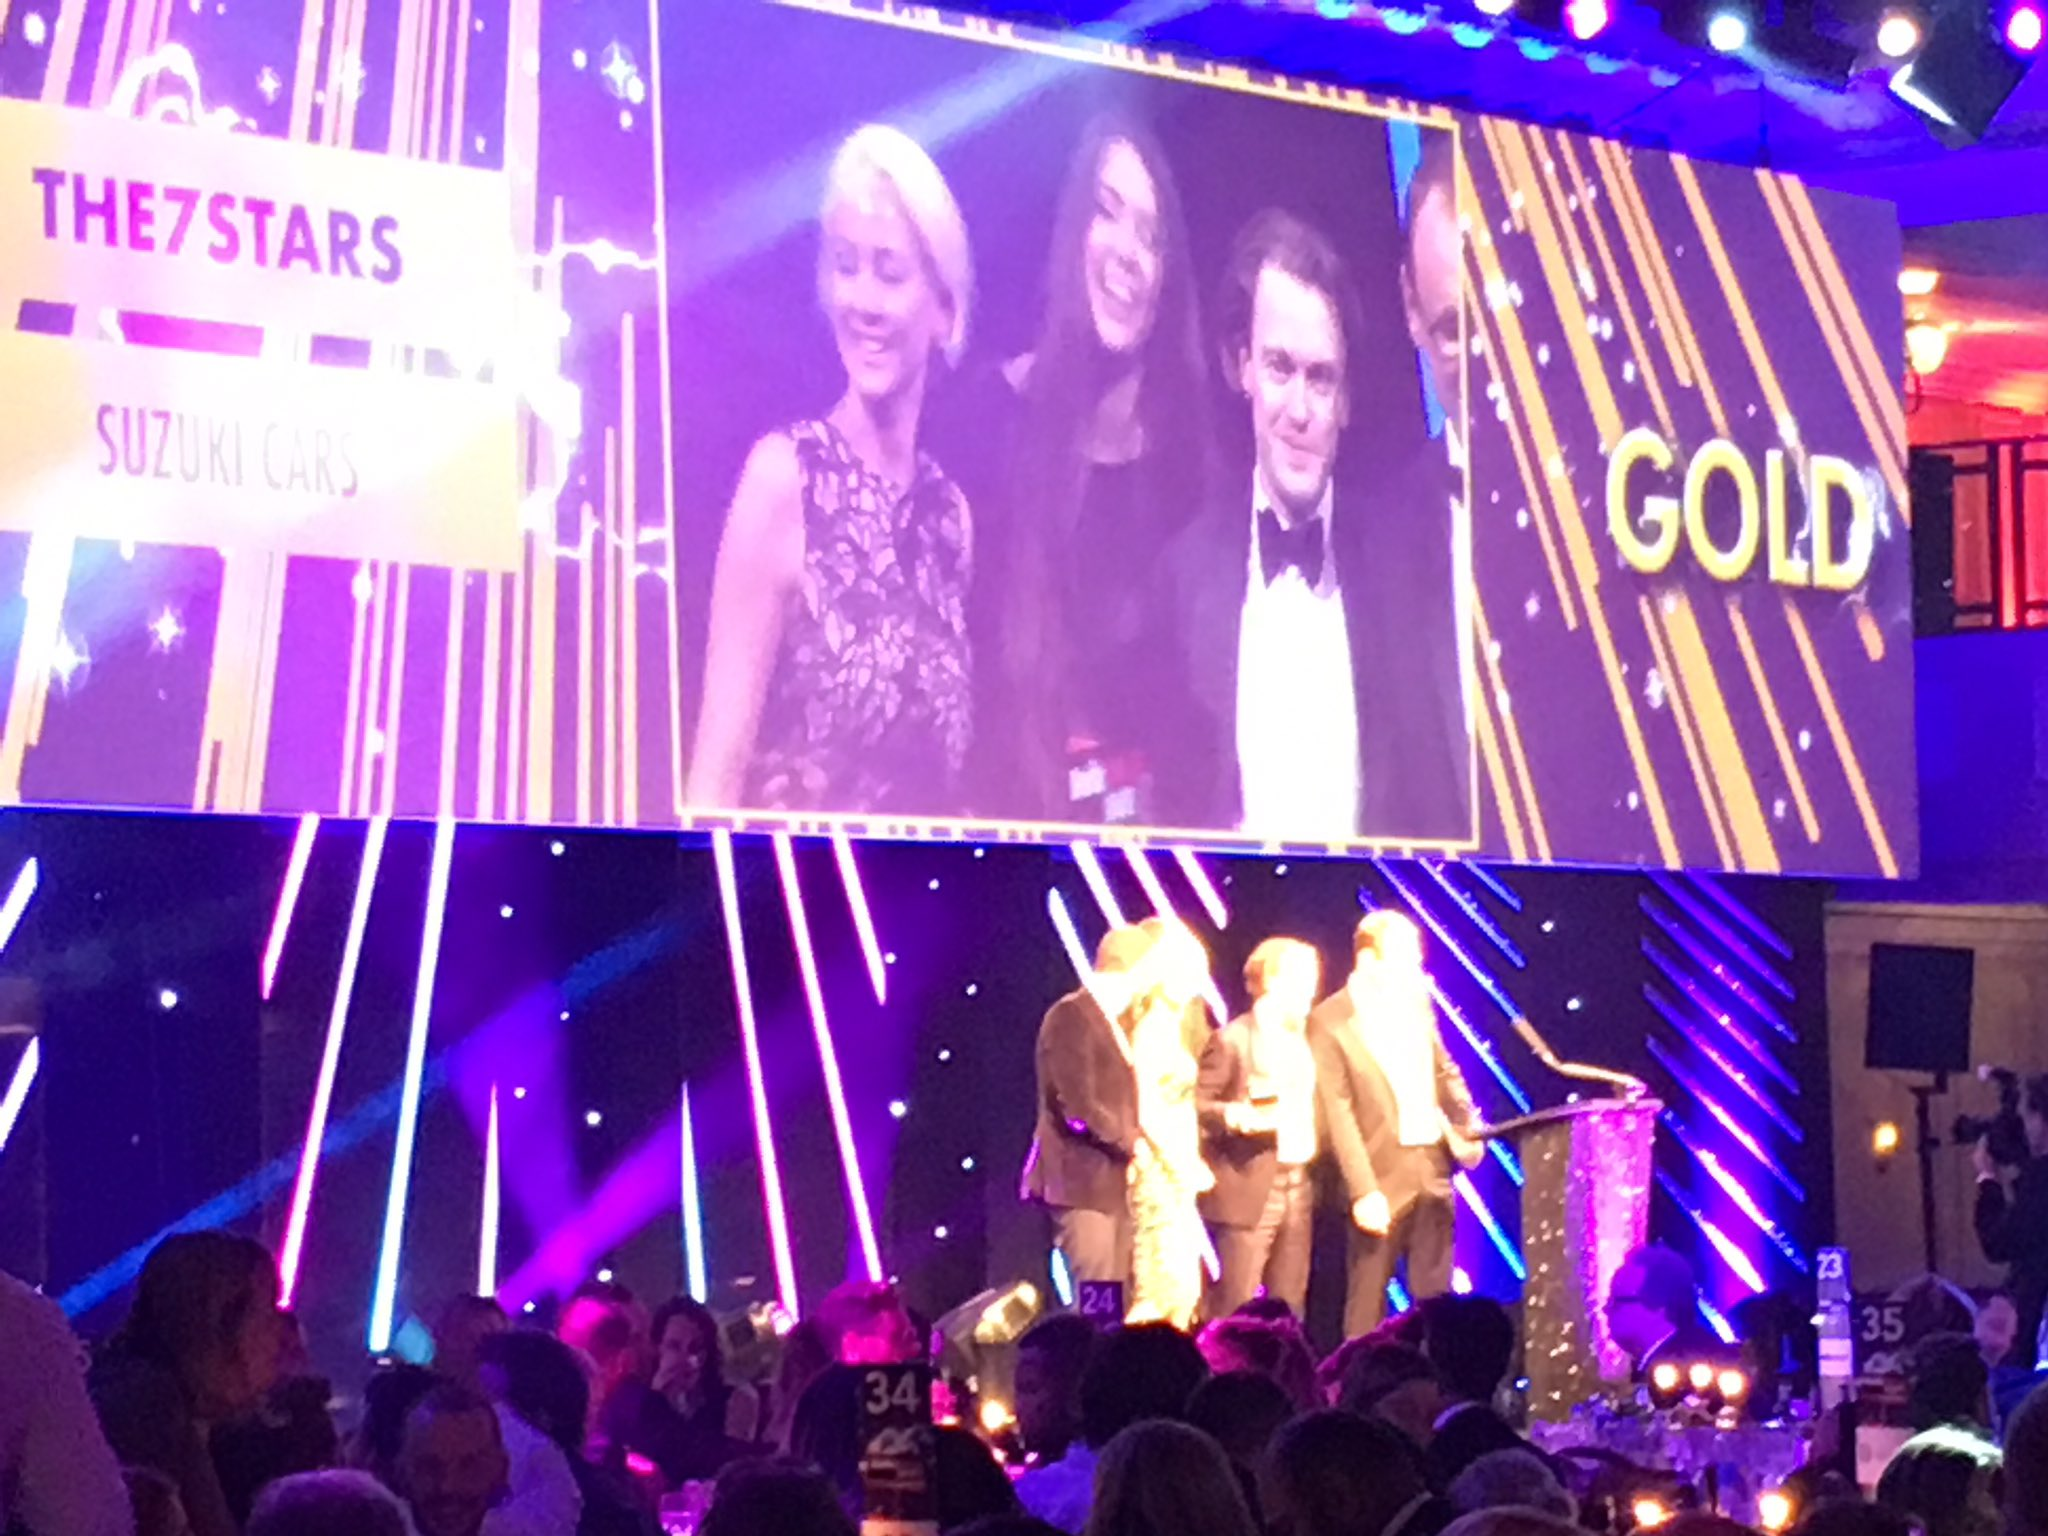 Another Gooooooold! #MediaWeekAwards Long Term Media Strategy @IcelandFoods 🙌🎉🥂 https://t.co/Kebjvc8hop